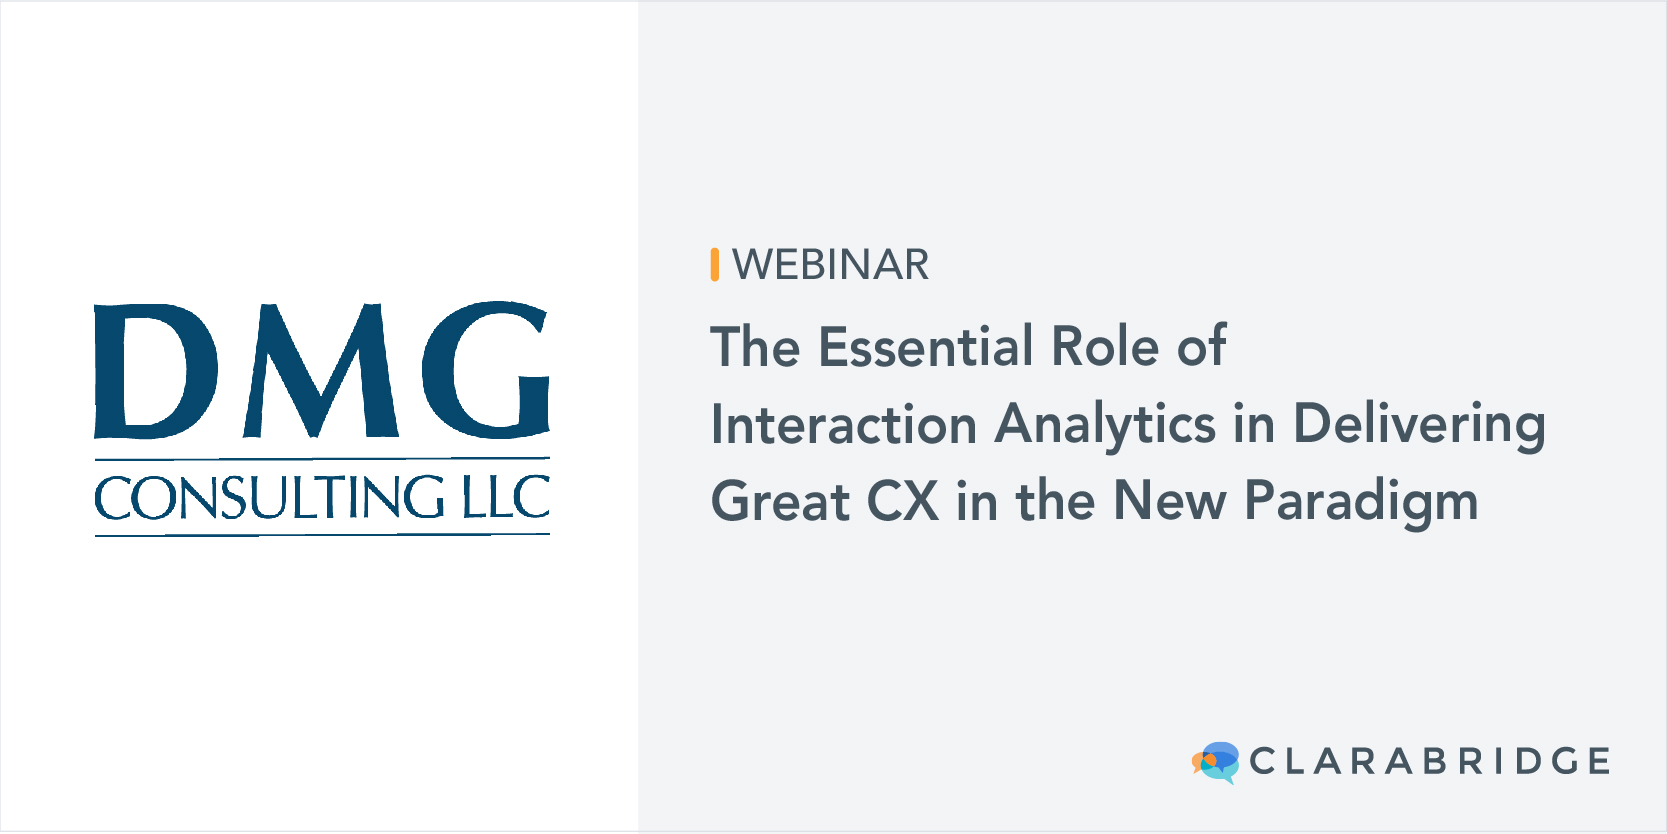 DMG Consulting webinar title image